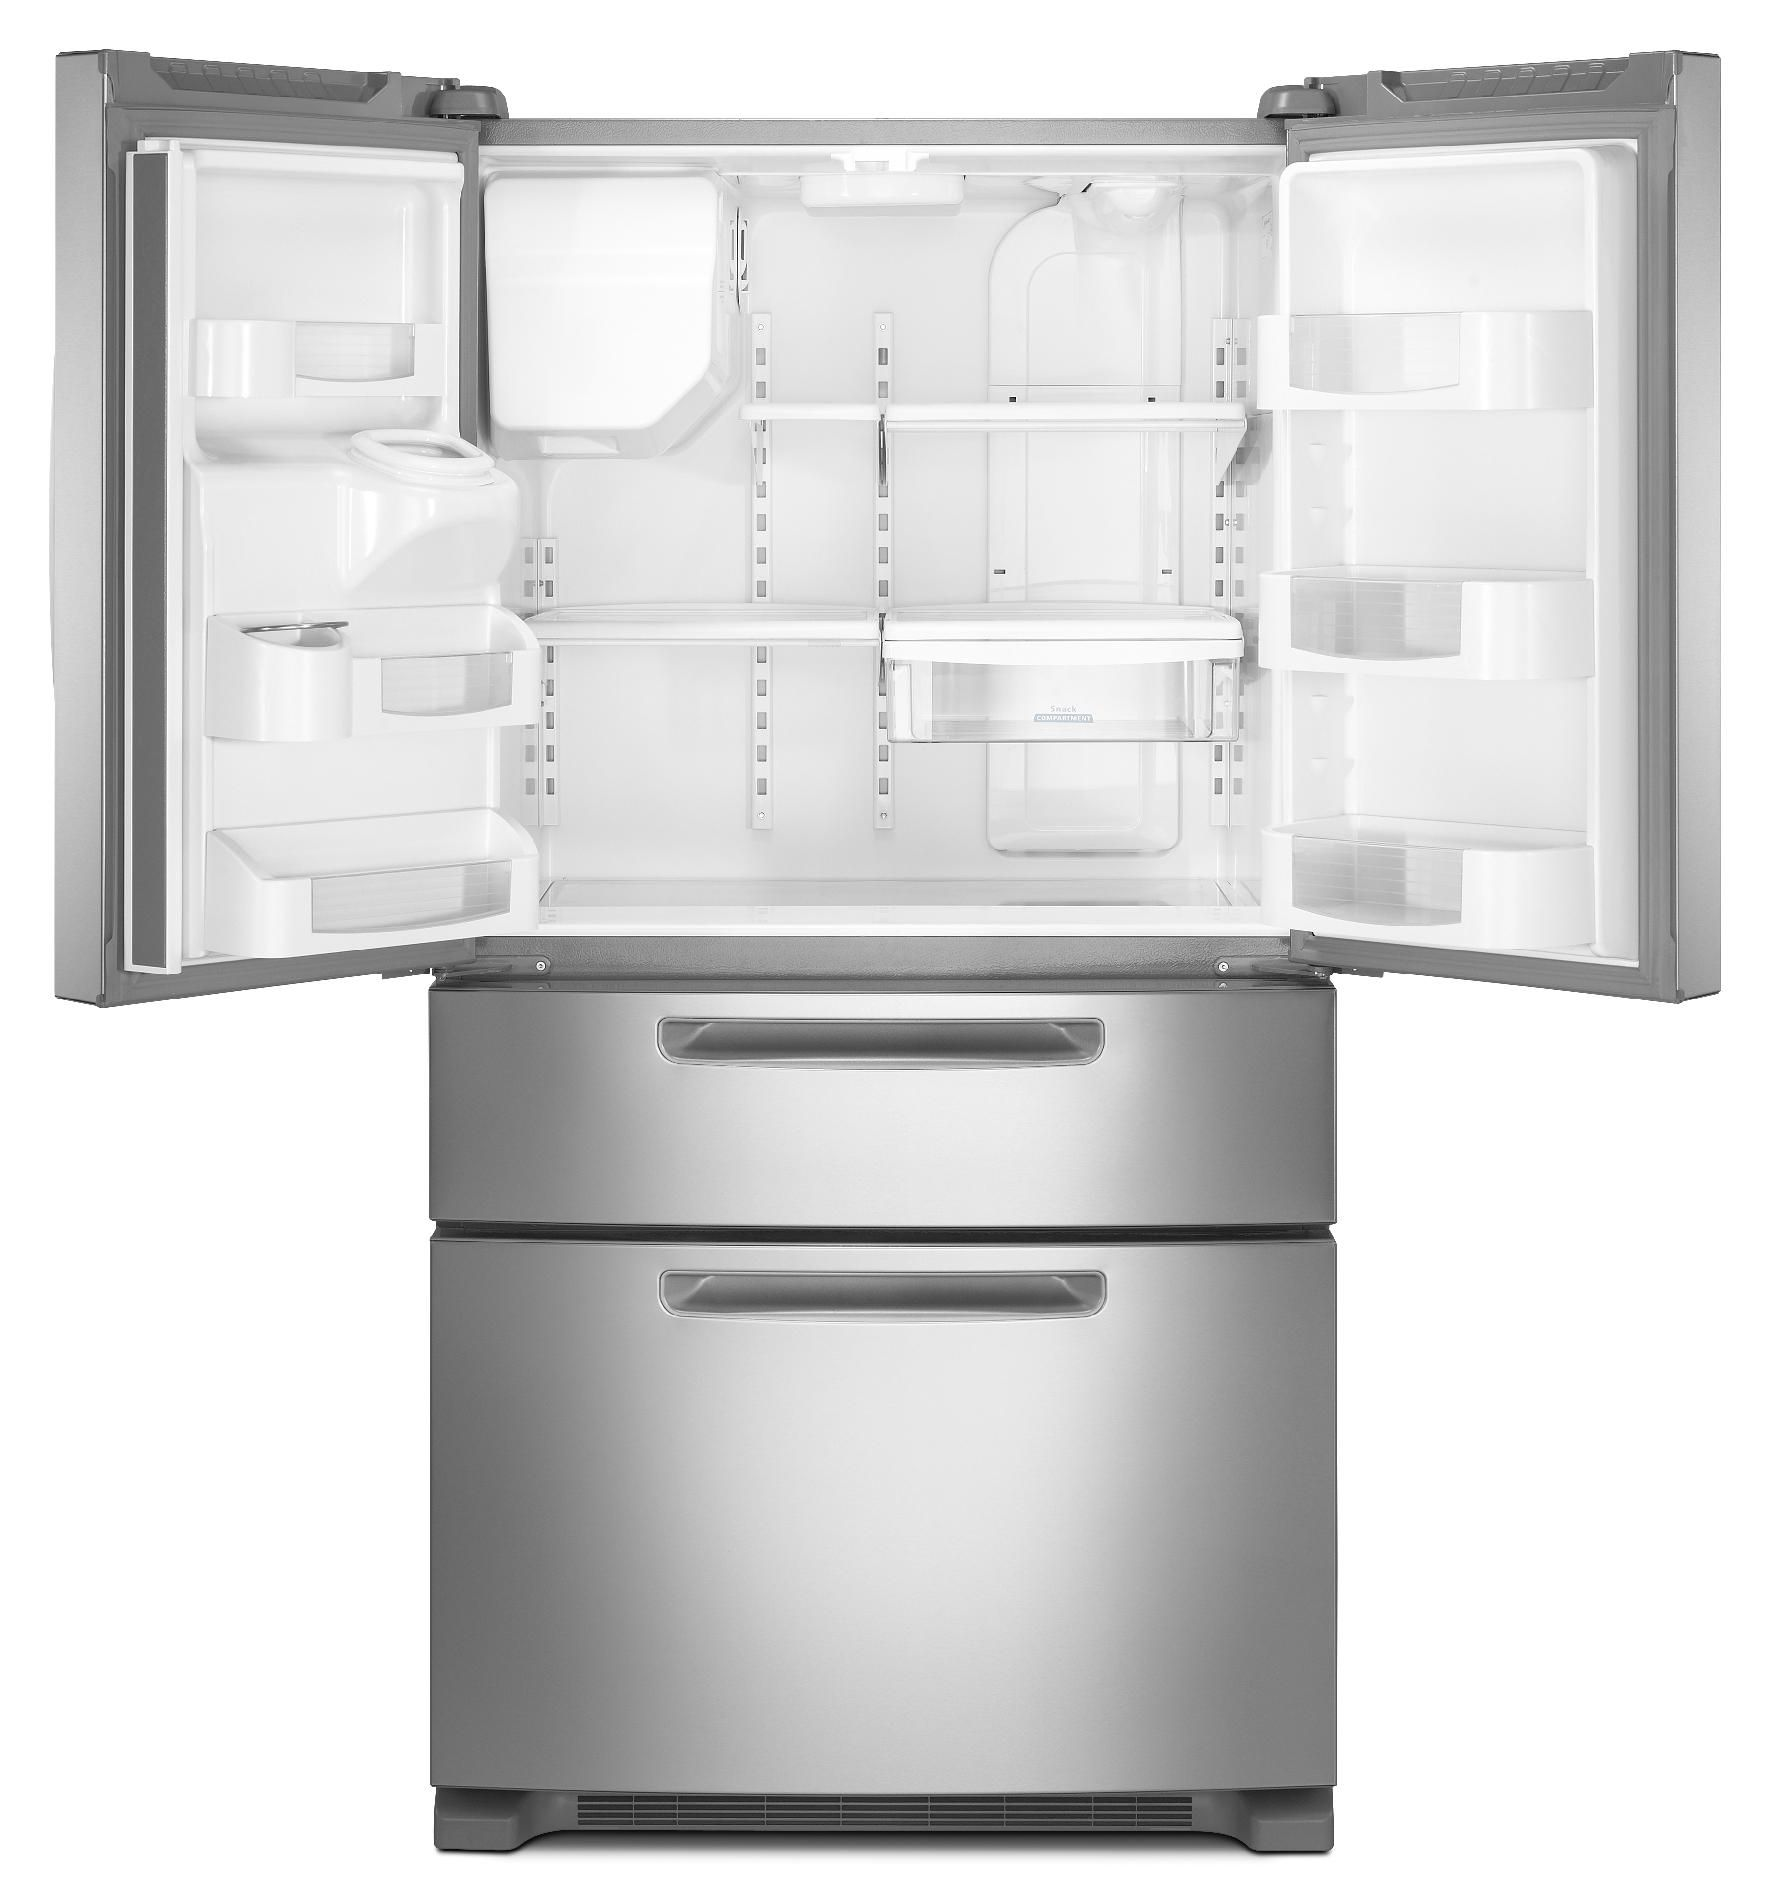 Maytag 25 cu. ft. 4-Door Refrigerator w/ Easy-Access Drawer - Stainless Steel